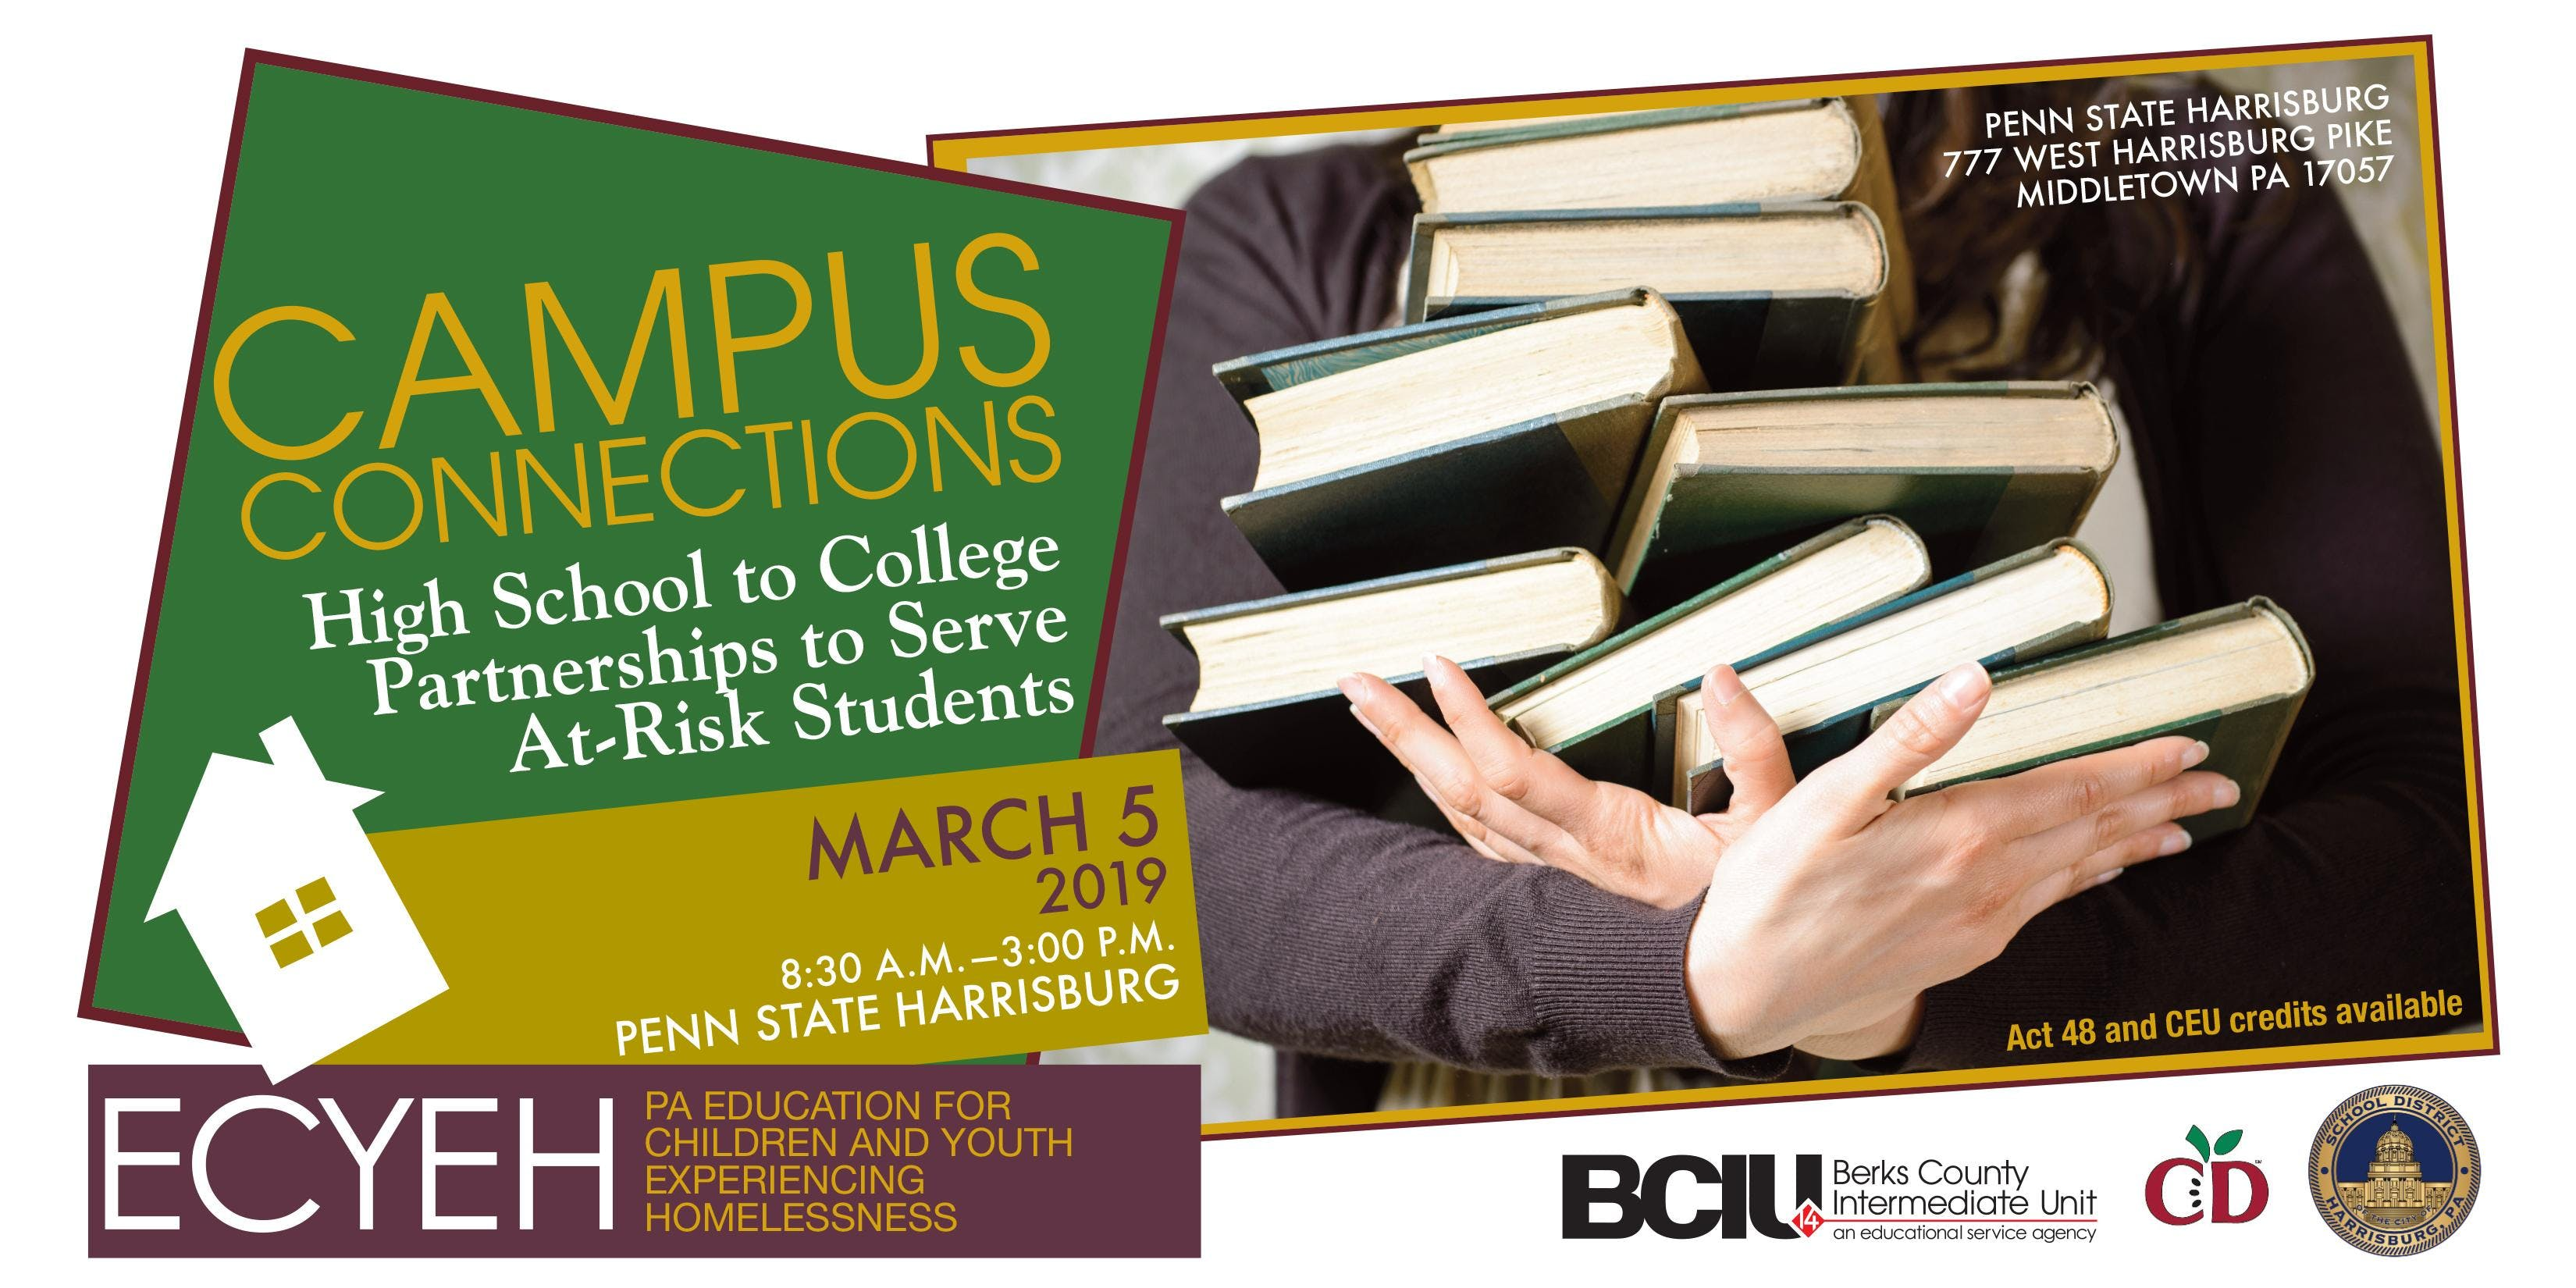 Campus Connections High School To College Partnerships To Serve At